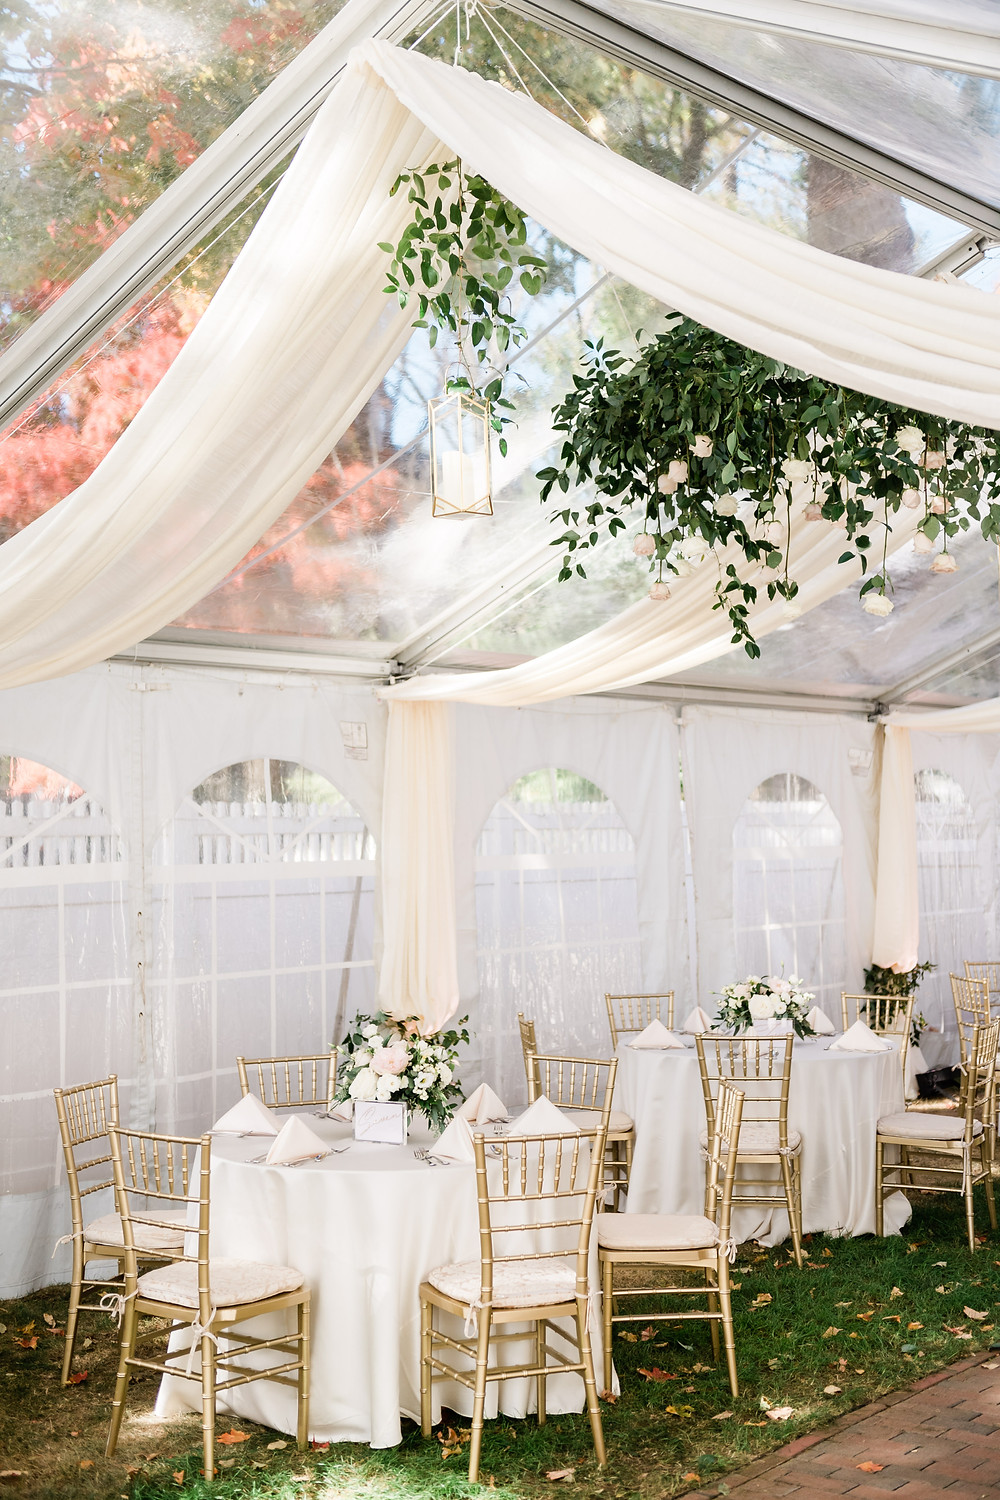 Fleur + Stitch, The Commons 1854, Tented Wedding, Clear Top tent, Micro Wedding, Covid Wedding